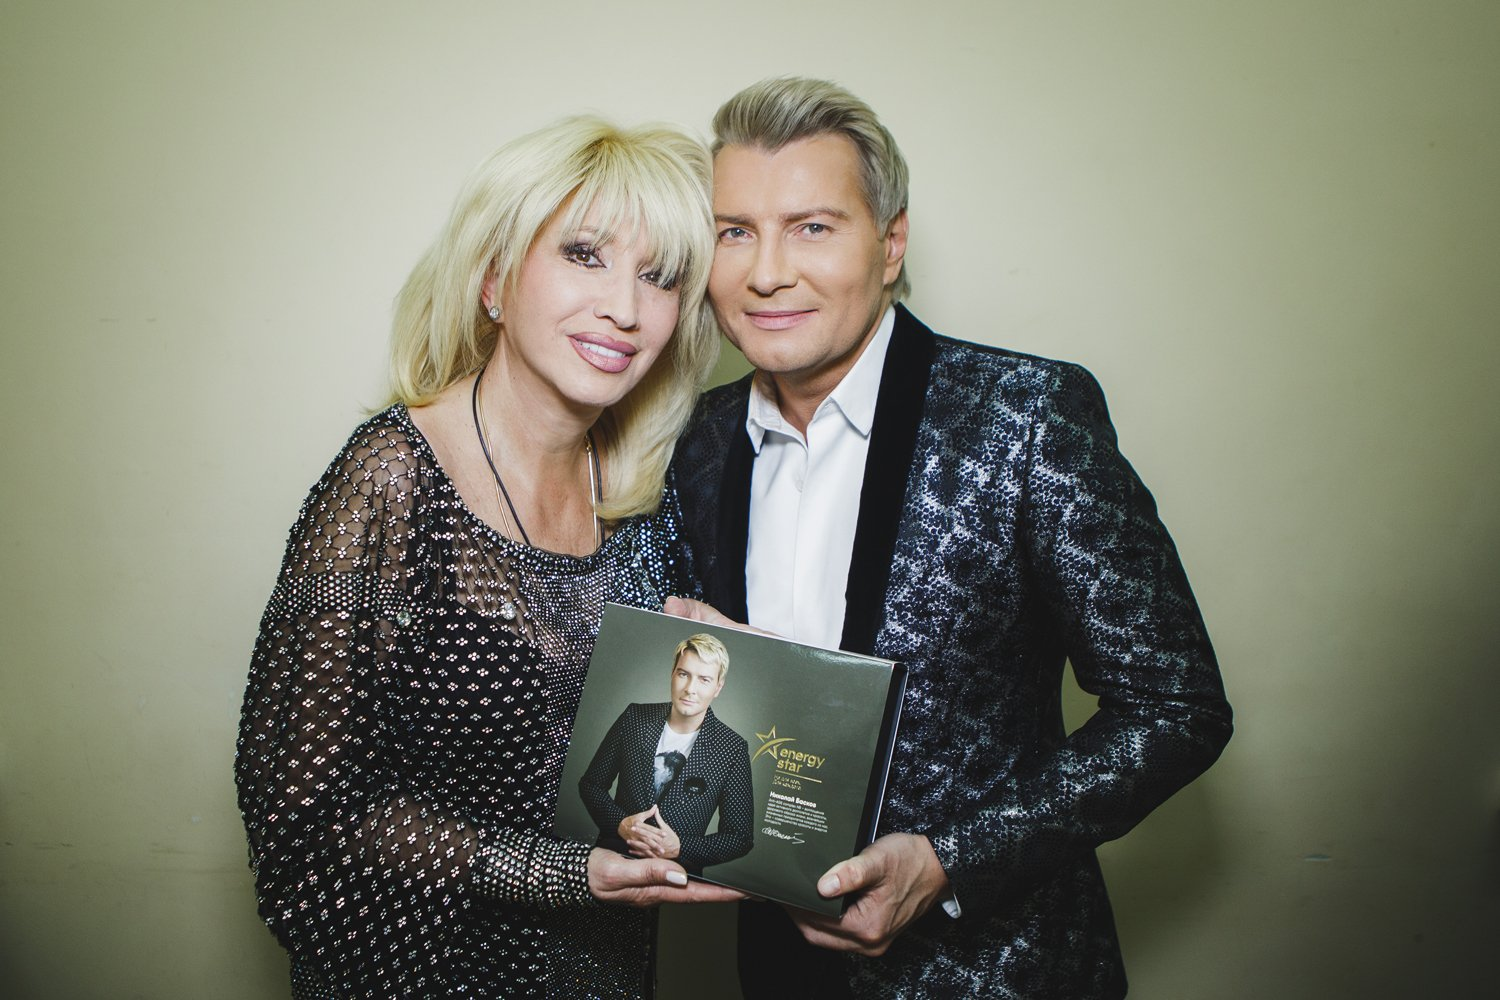 Nikolay Baskov remembered how he almost died in the refrigerator of Irina Allegrova